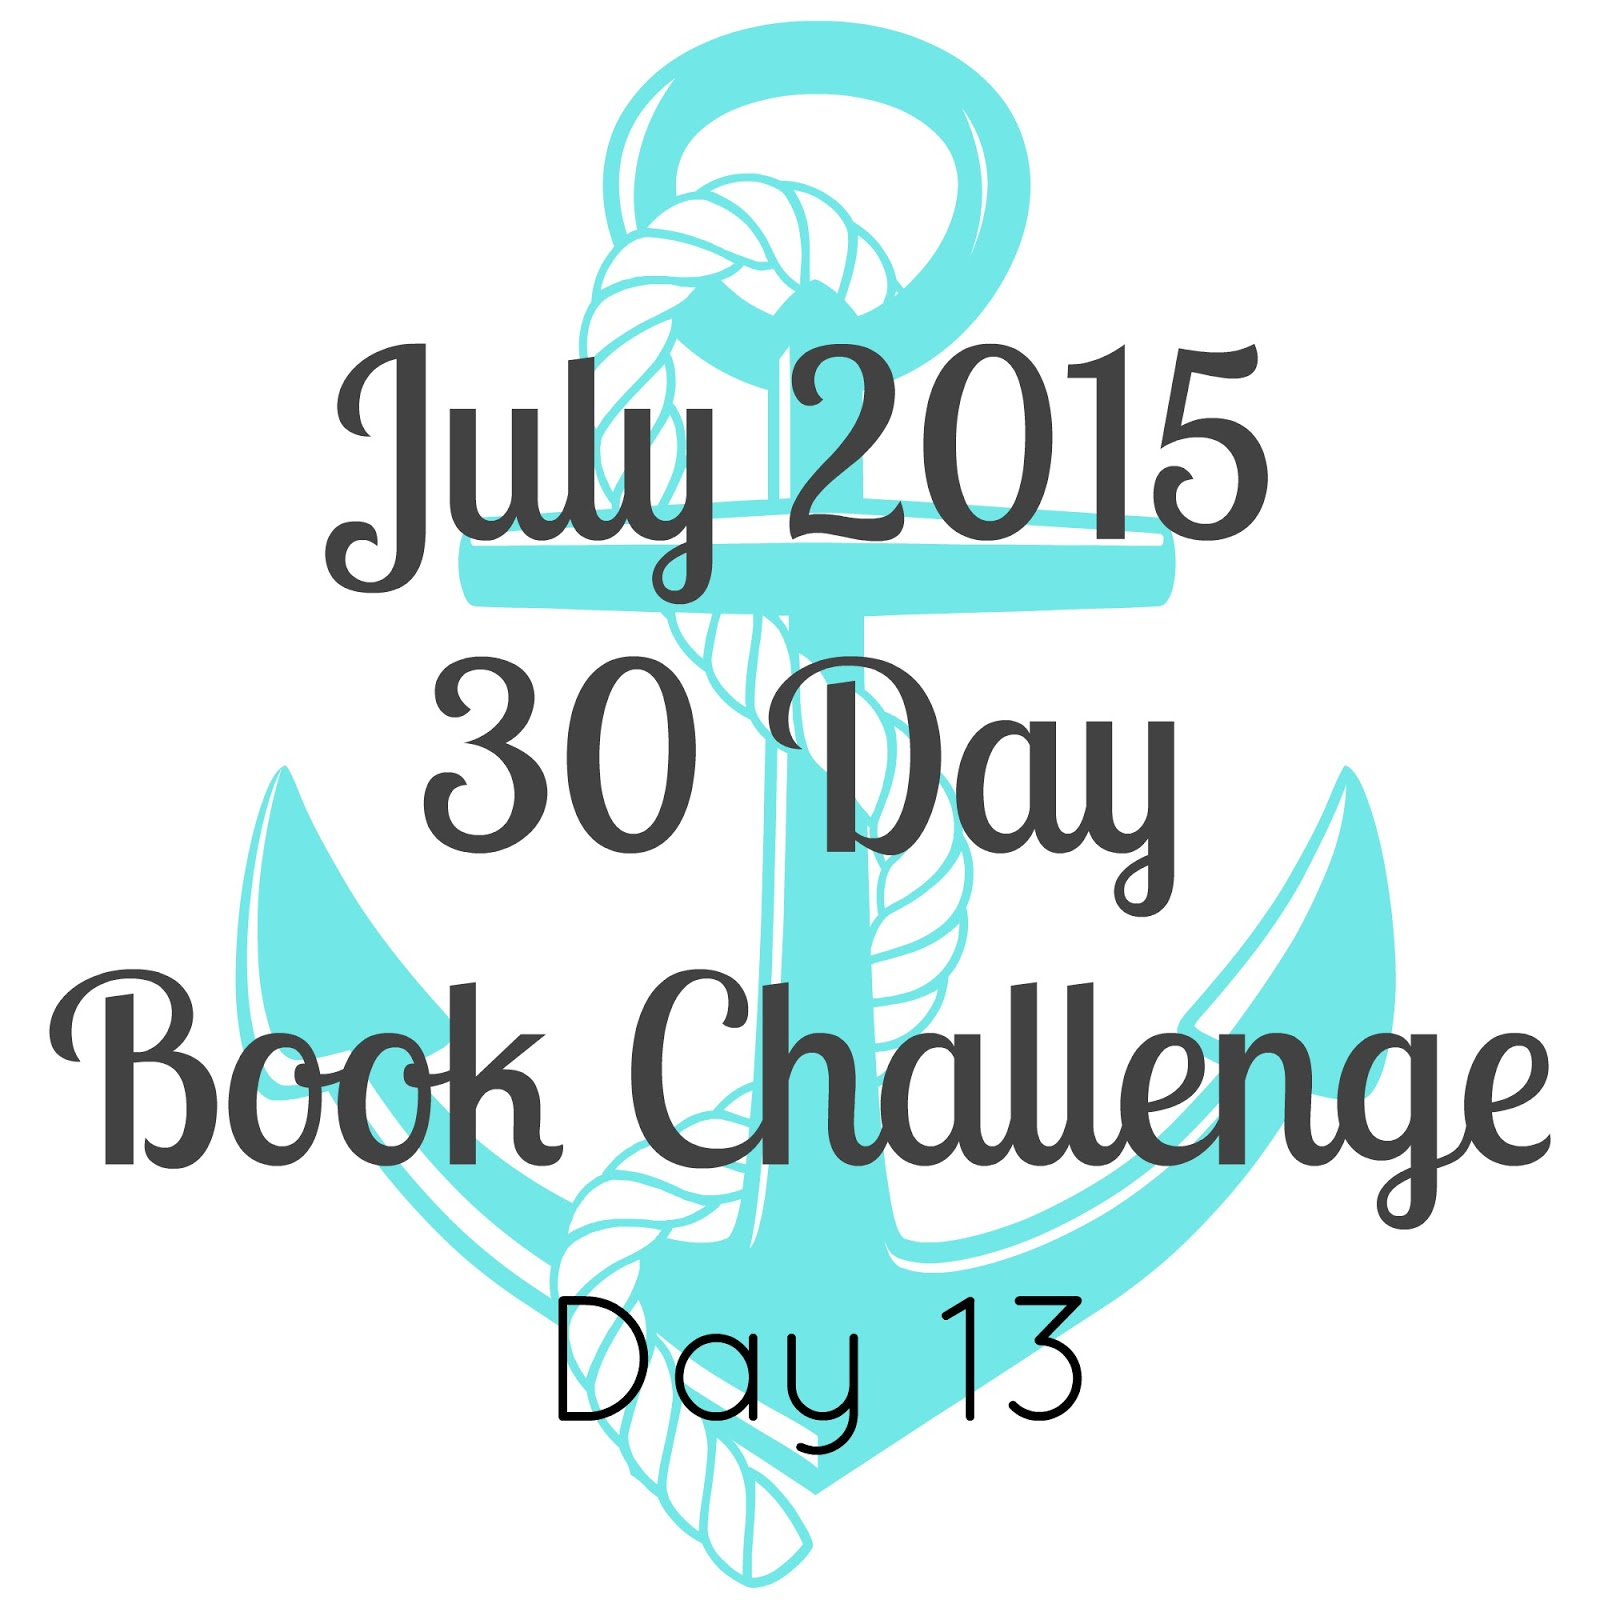 30 Day Book Writing Challenge 30 Day Book Challenge Day 13